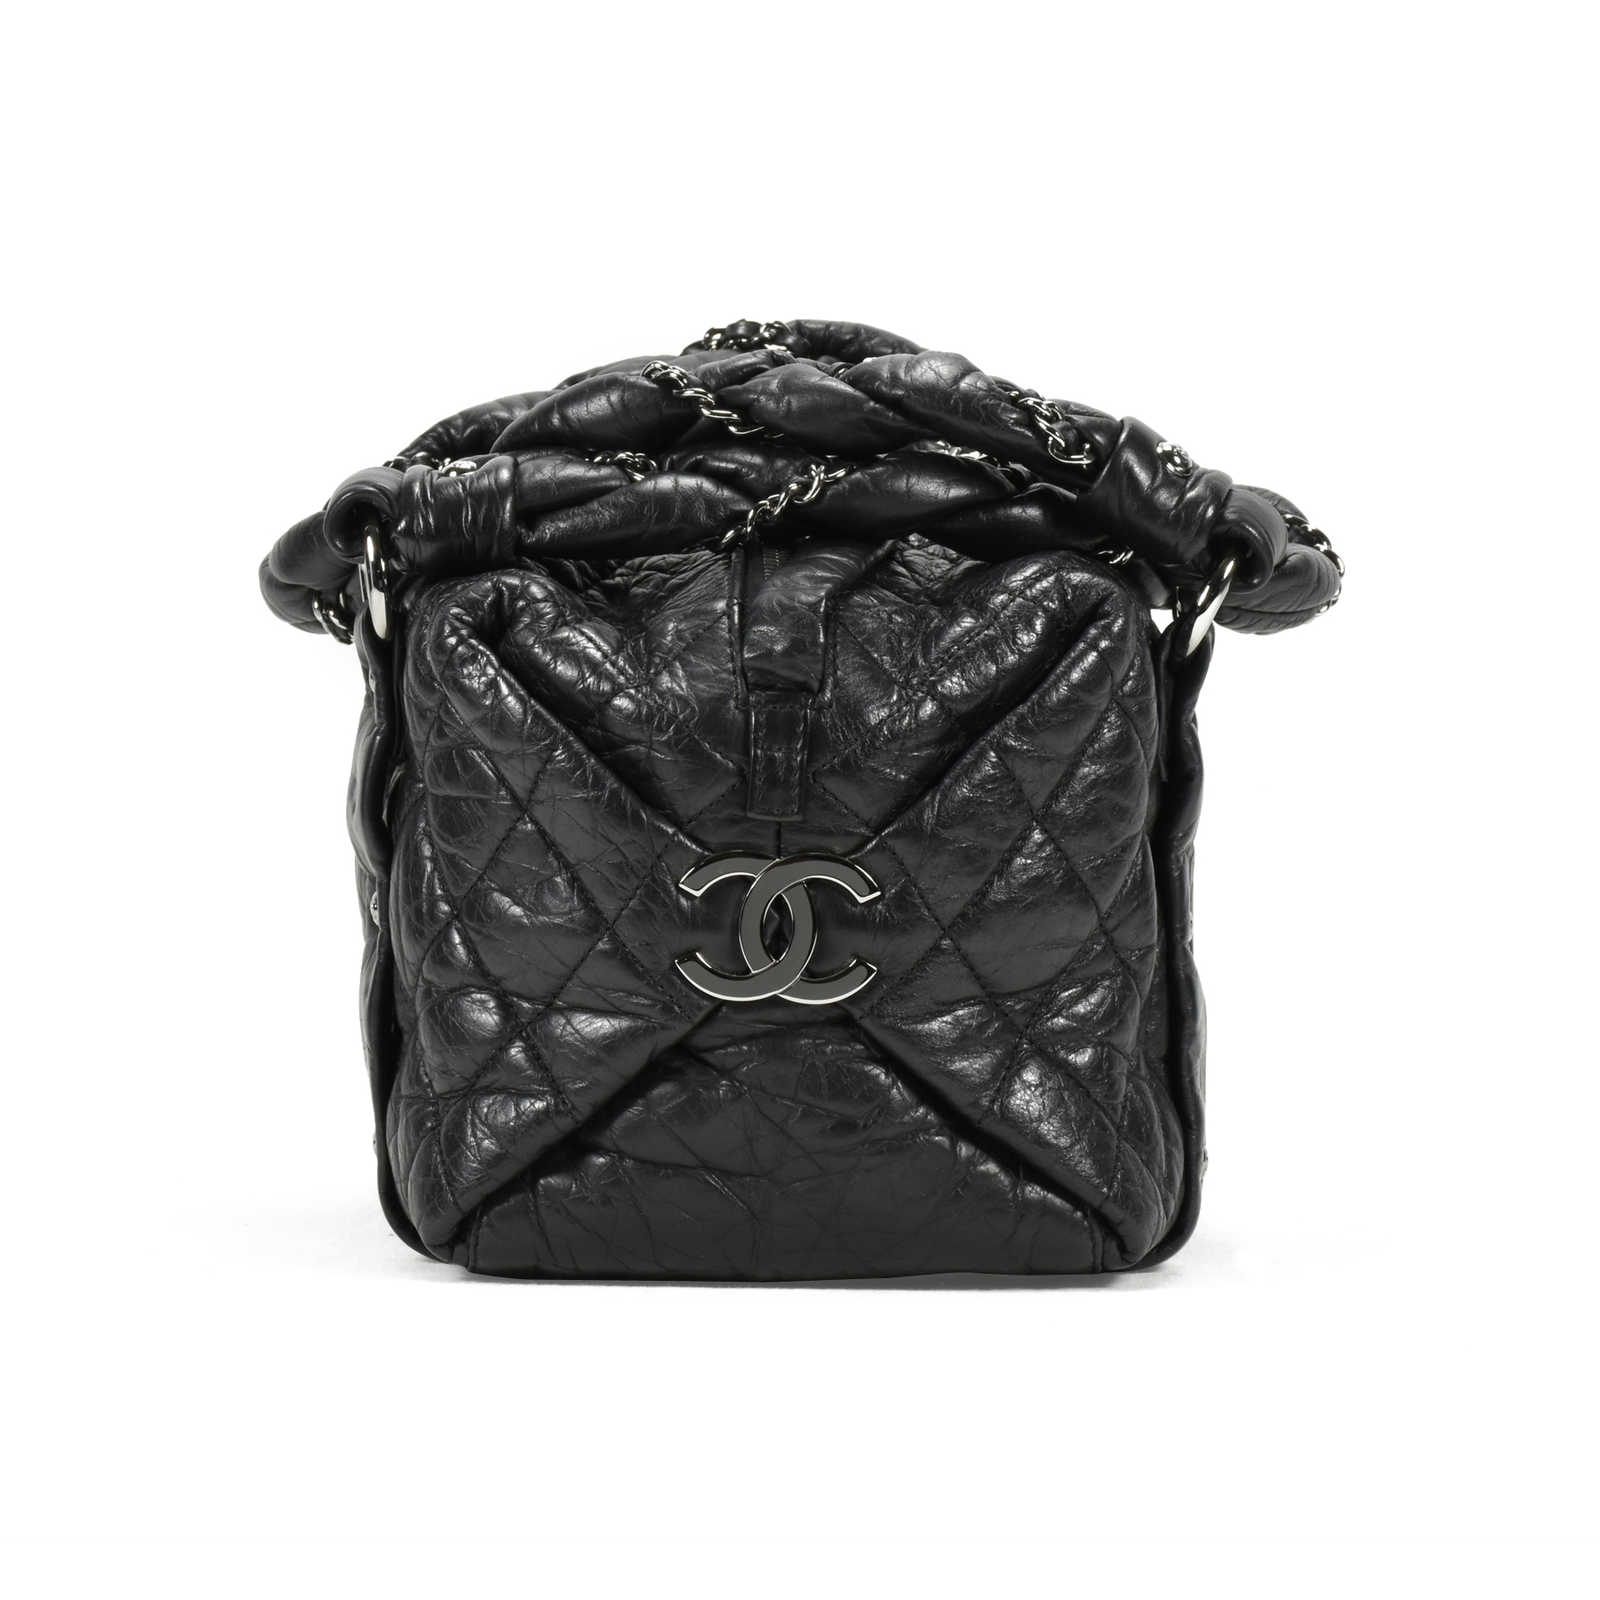 7a45a1710d08 ... Authentic Second Hand Chanel Lady Braid Small Tote Bag (PSS-200-00898)  ...